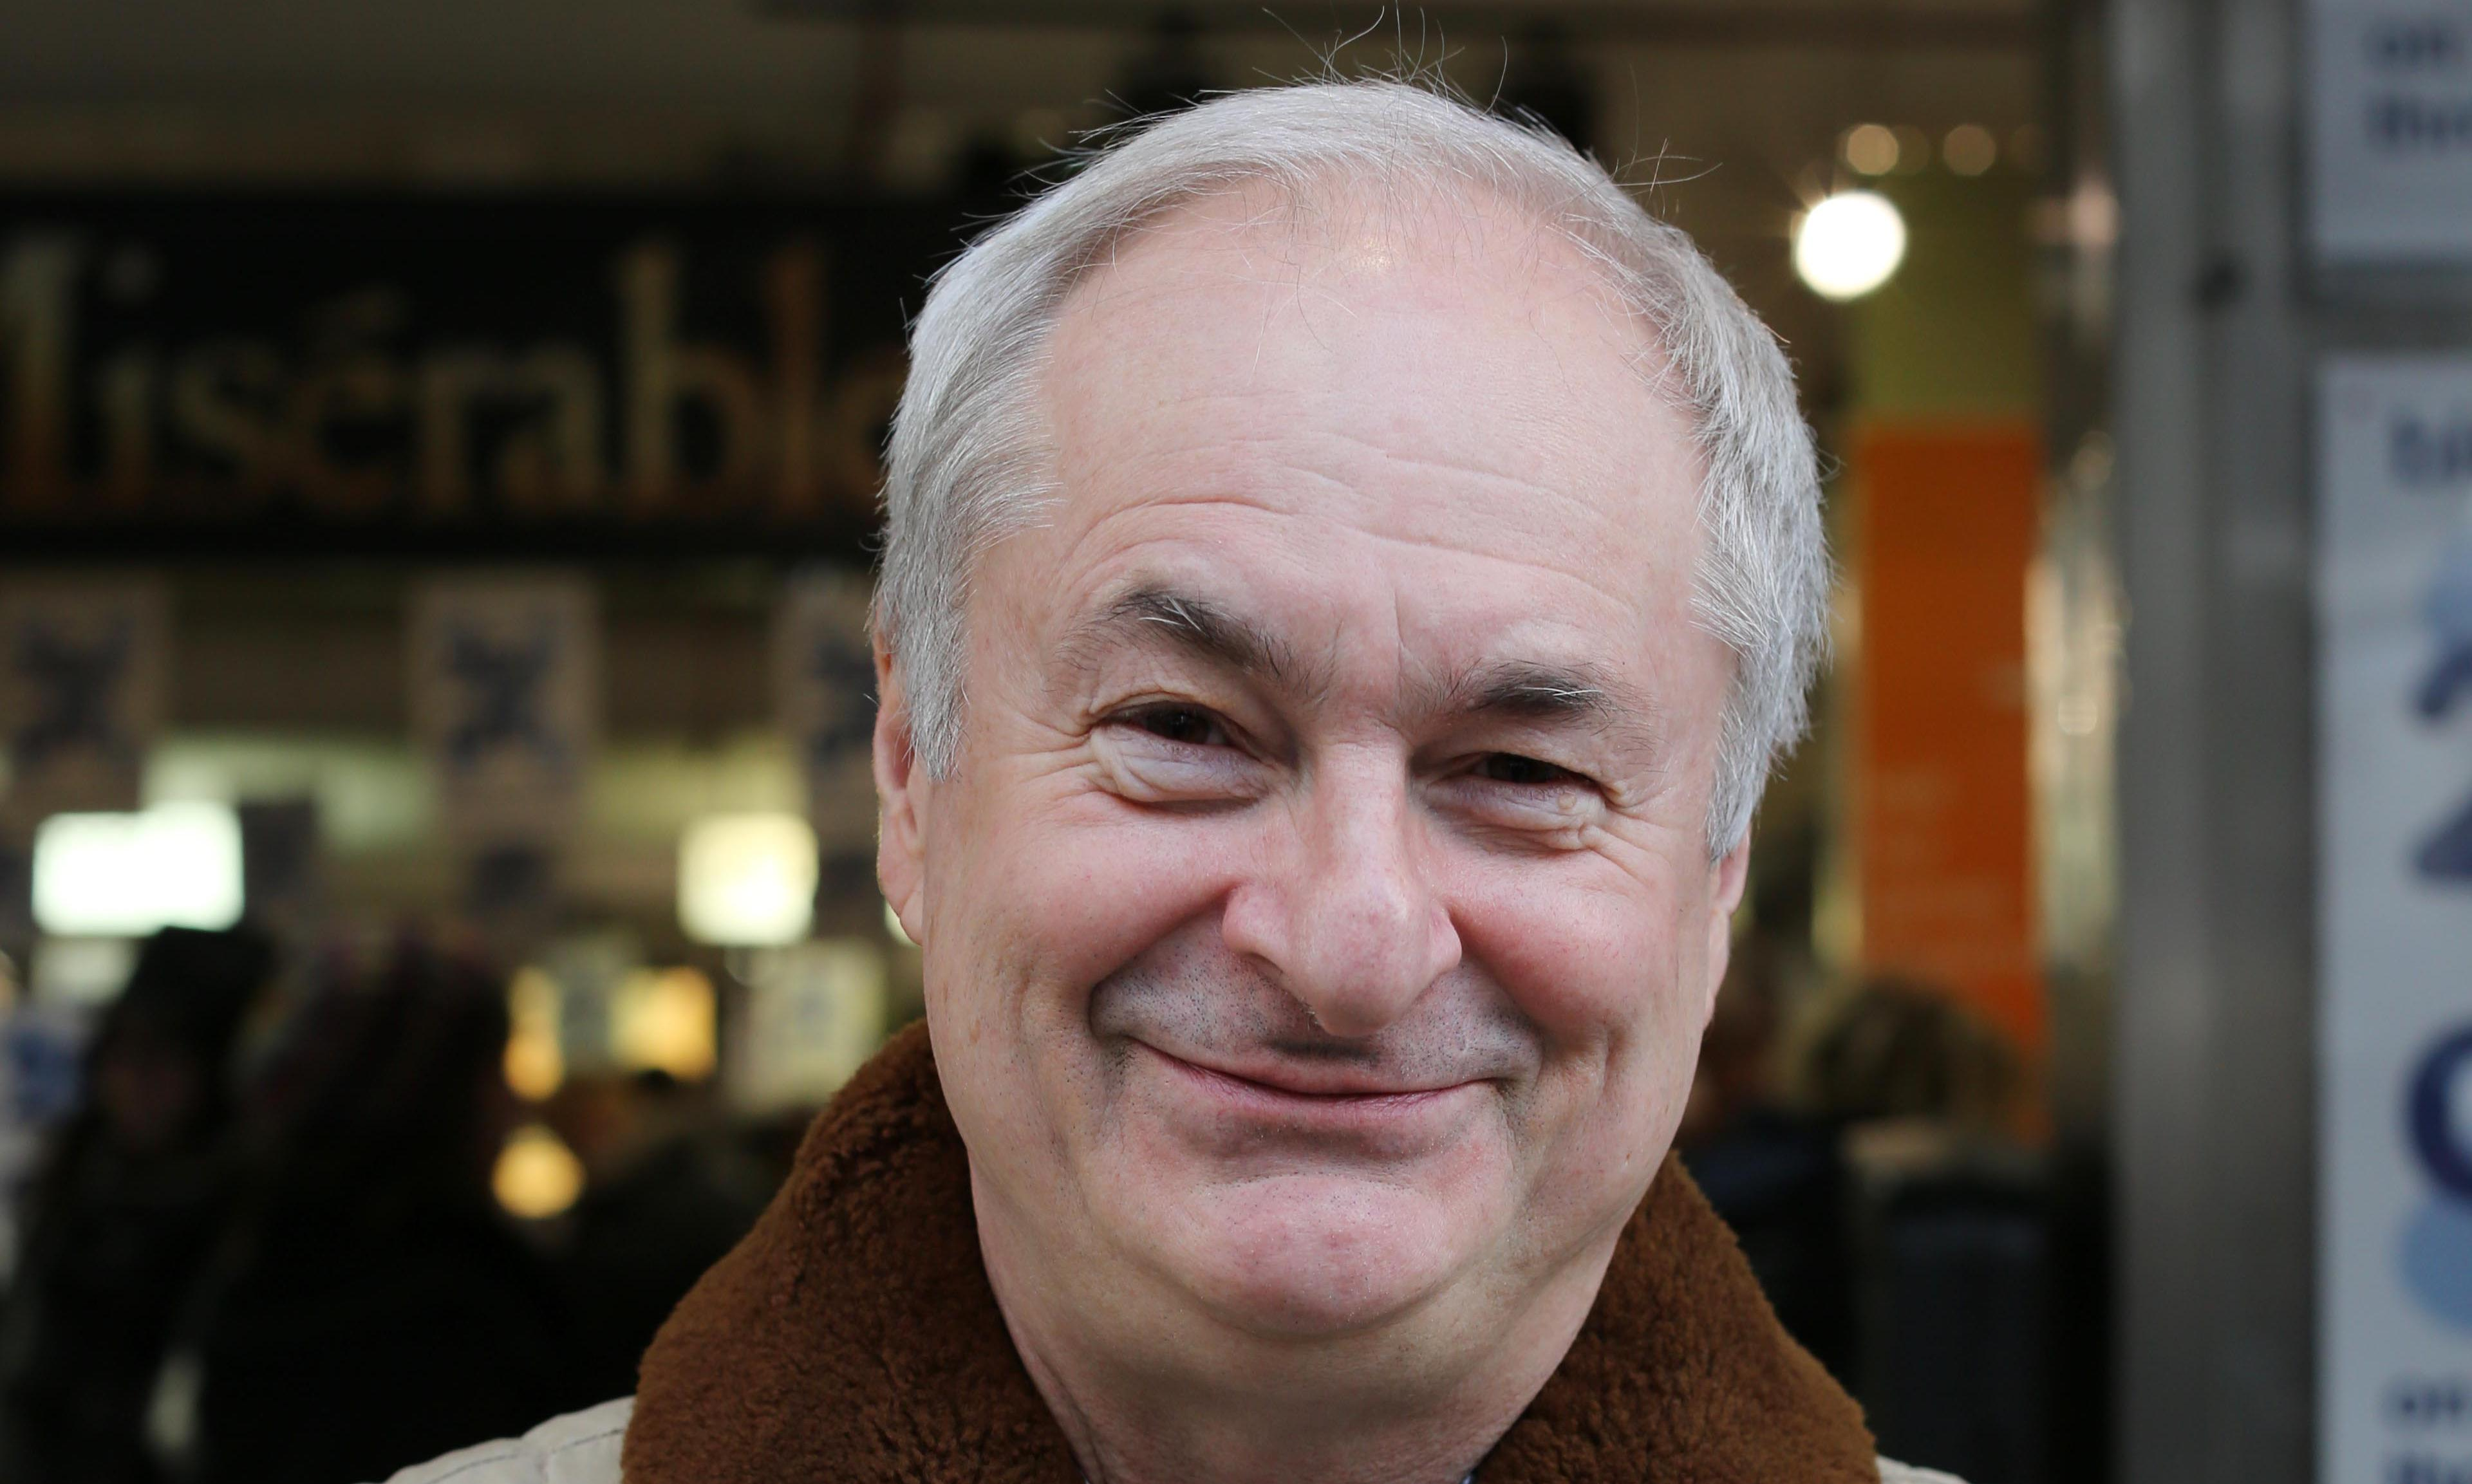 Paul Gambaccini calls for tougher action over false claims of sexual abuse